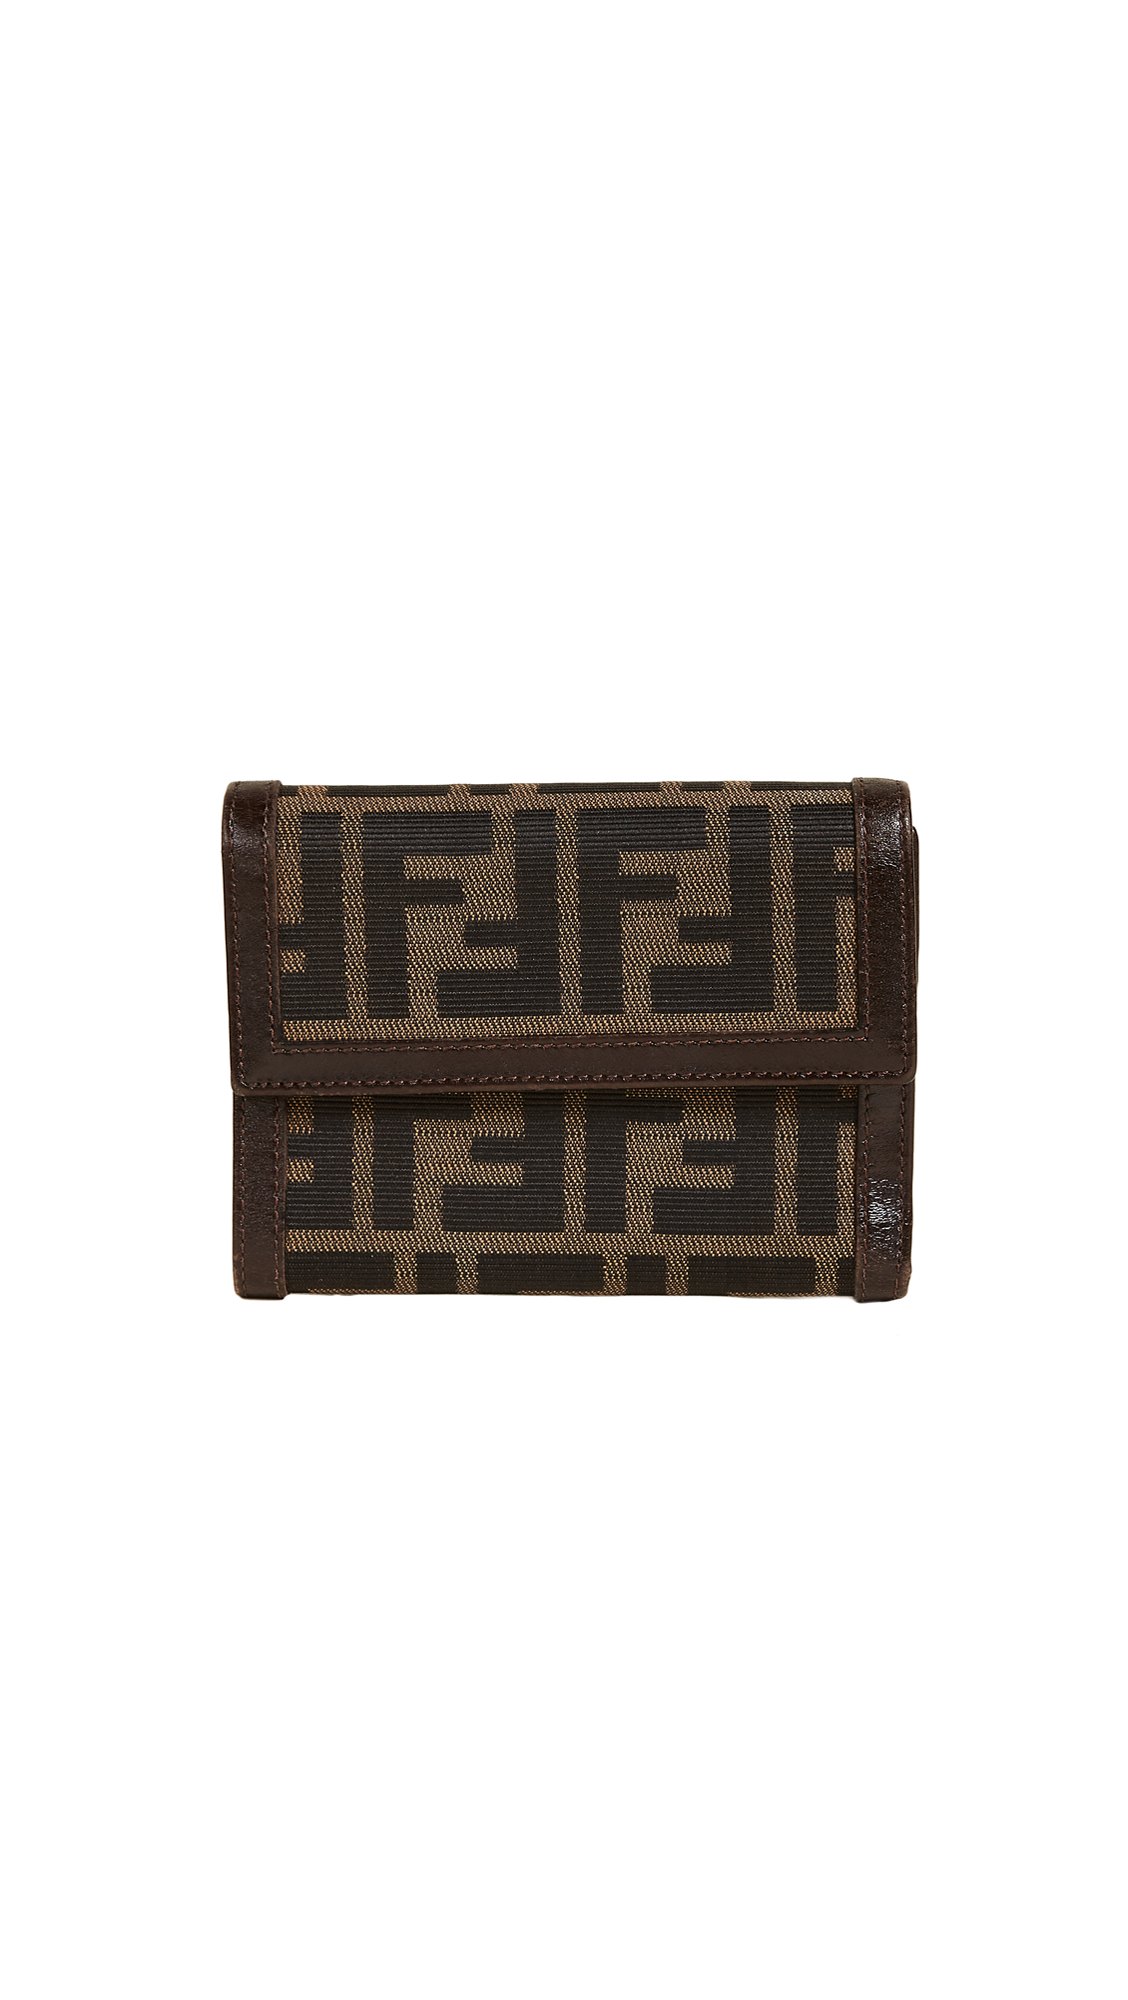 What Goes Around Comes Around Fendi Zucca Wallet (Previously Owned) - Brown